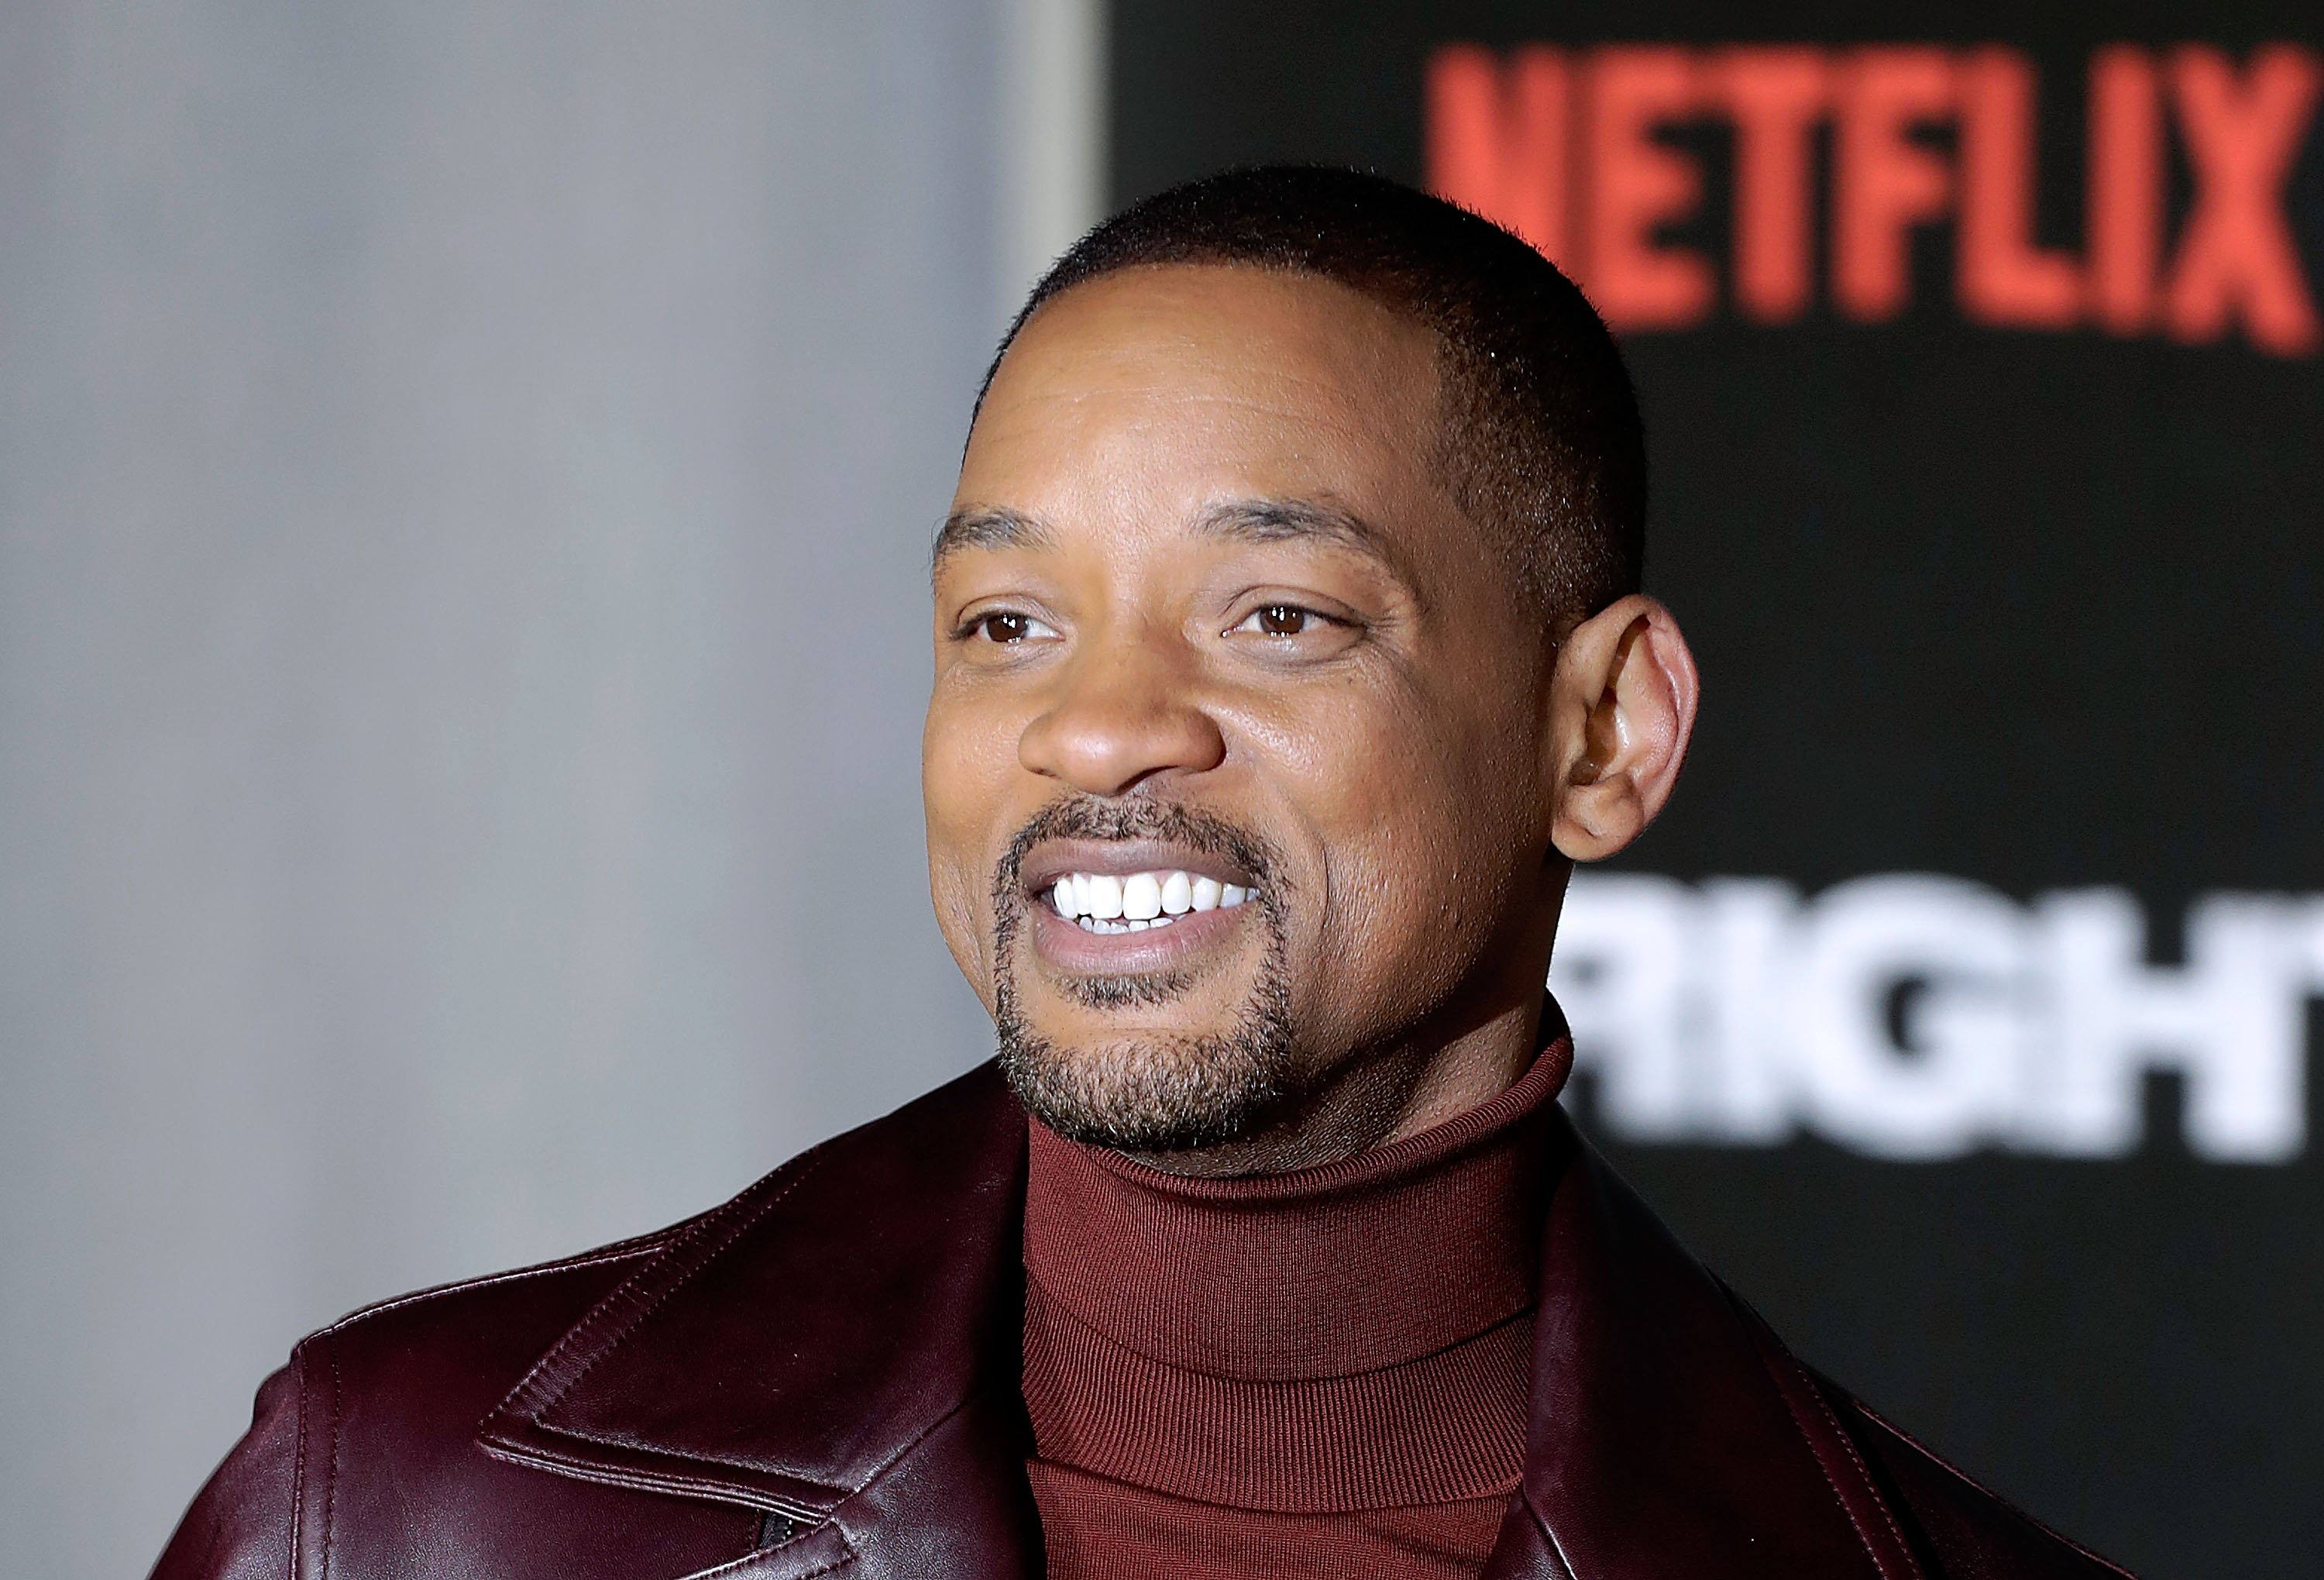 """Will Smith at the European premiere of """"Bright"""" in December 2017.   Photo: Getty Images"""